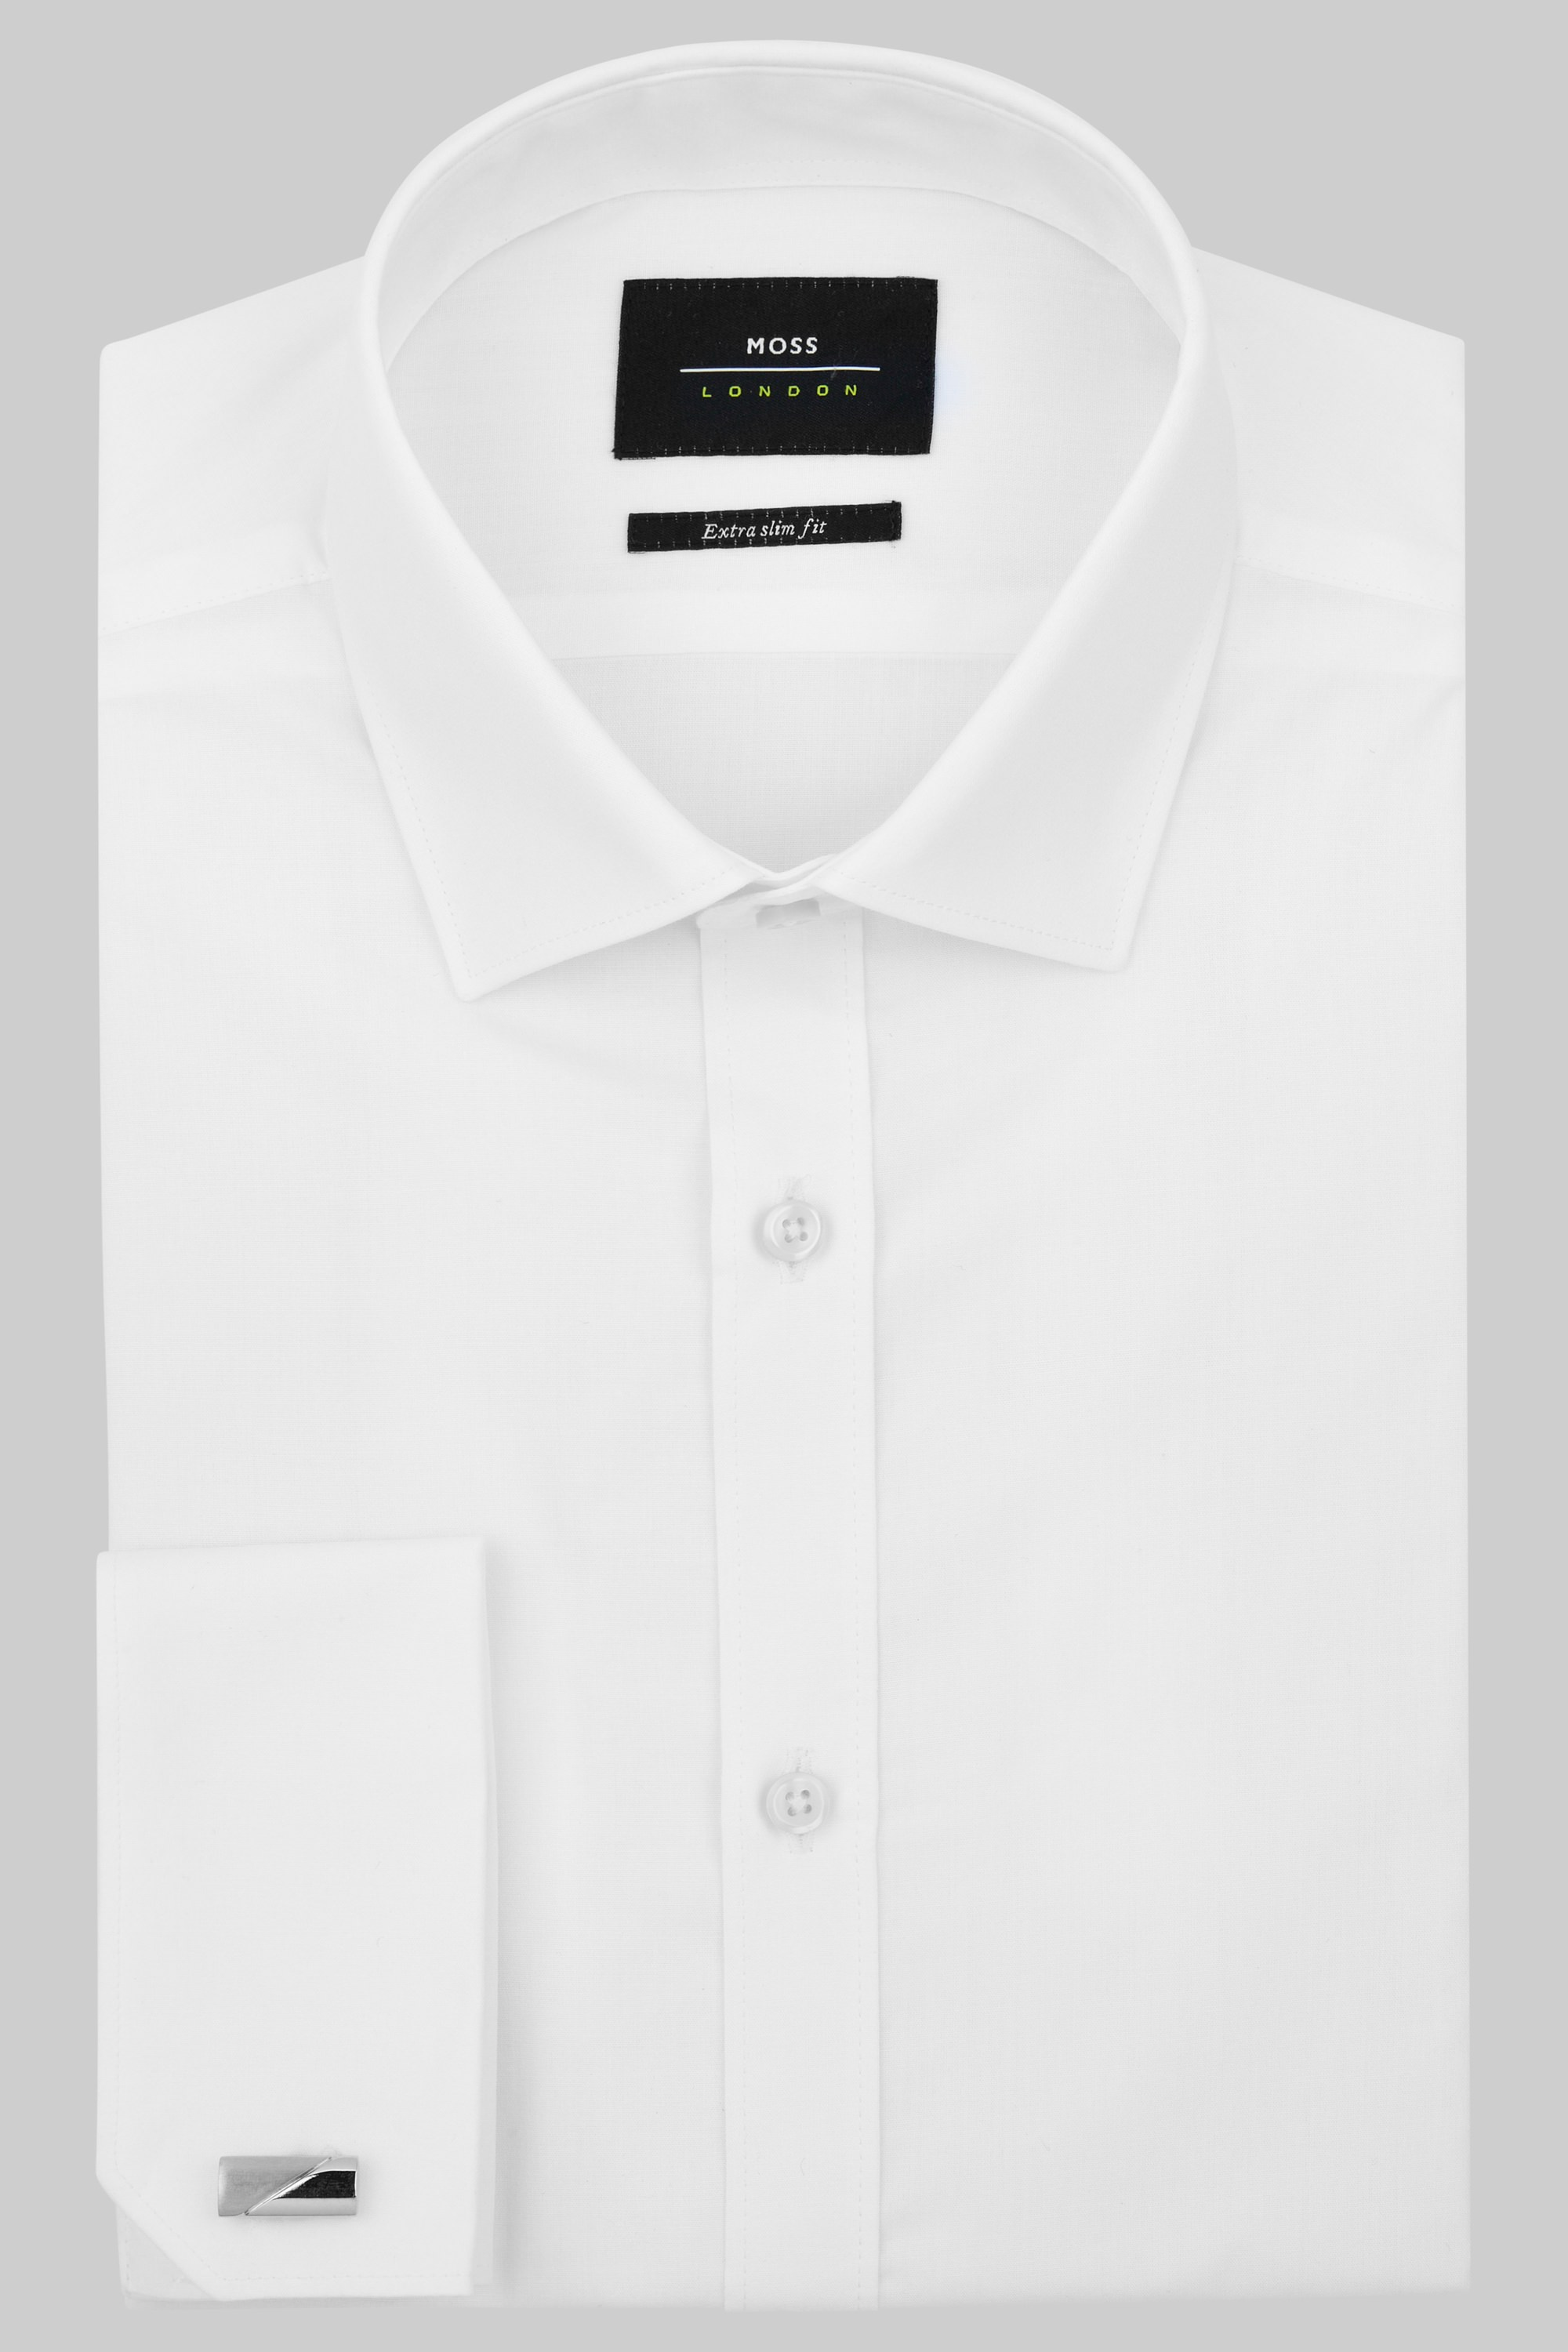 Double Cuff White - Shop the latest trends in Shirts at M&S. Order online for home delivery or free collection from your nearest store.